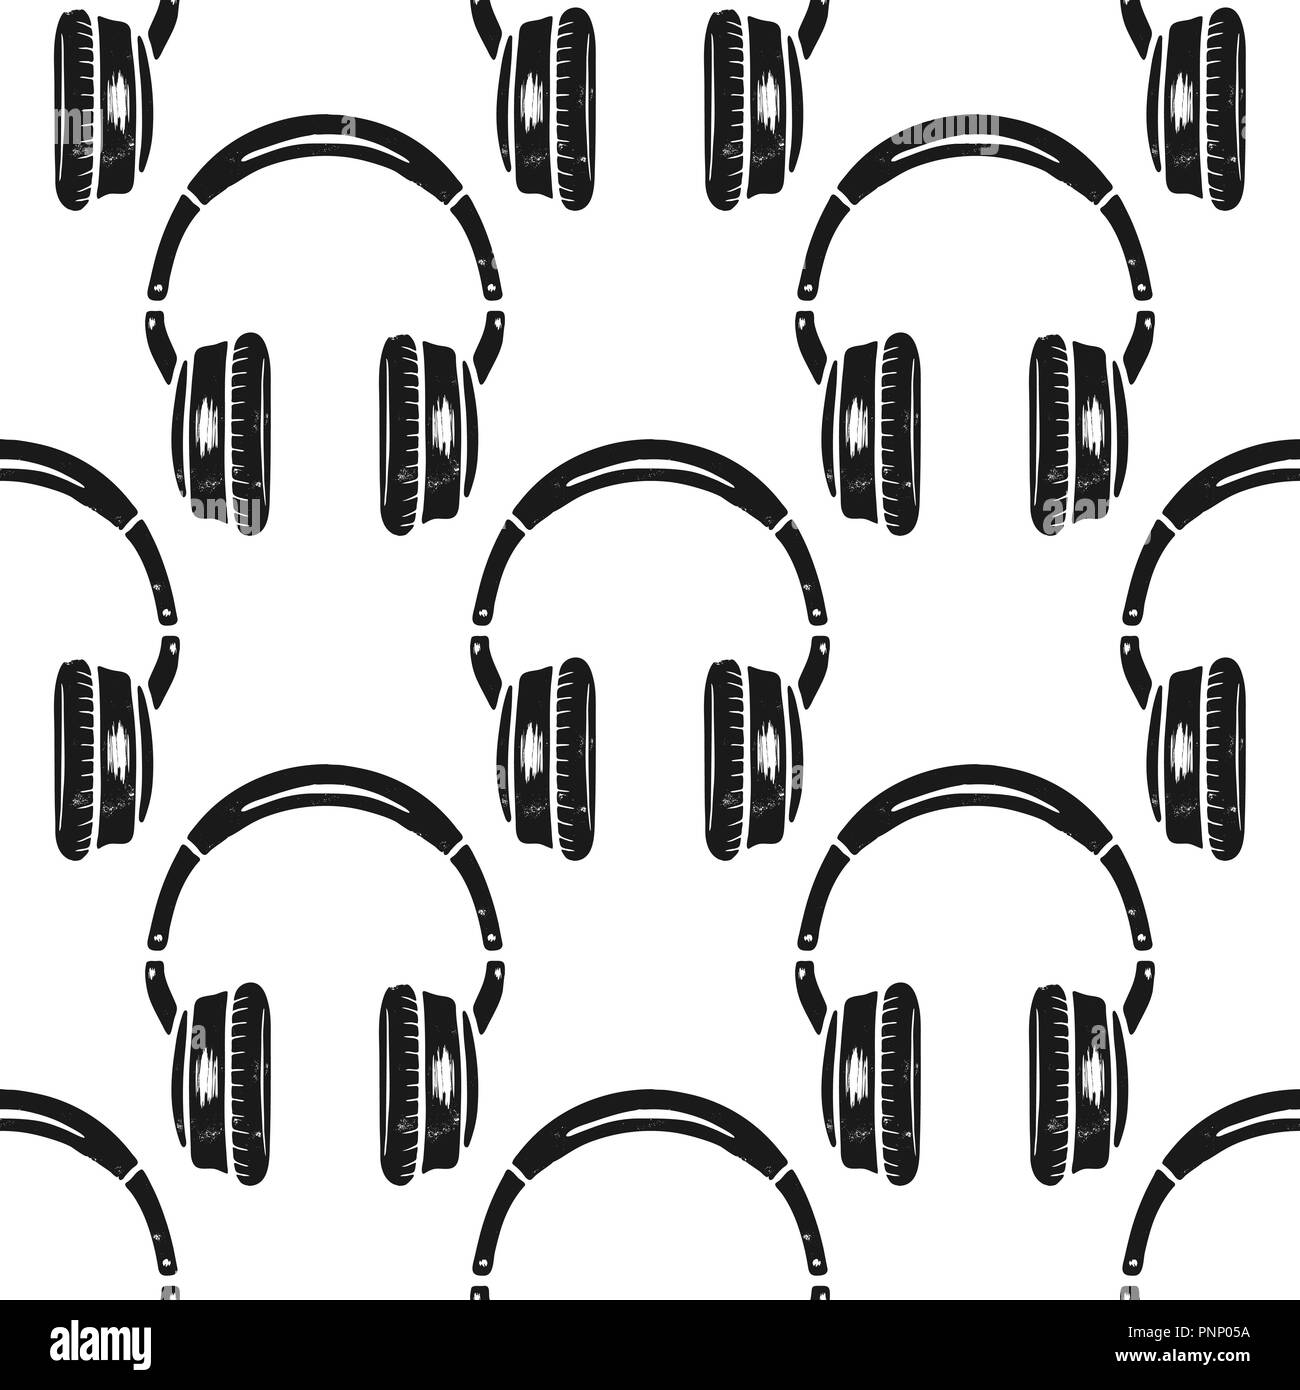 Headphones Seamless Pattern Music Symbol Silhouette Distressed